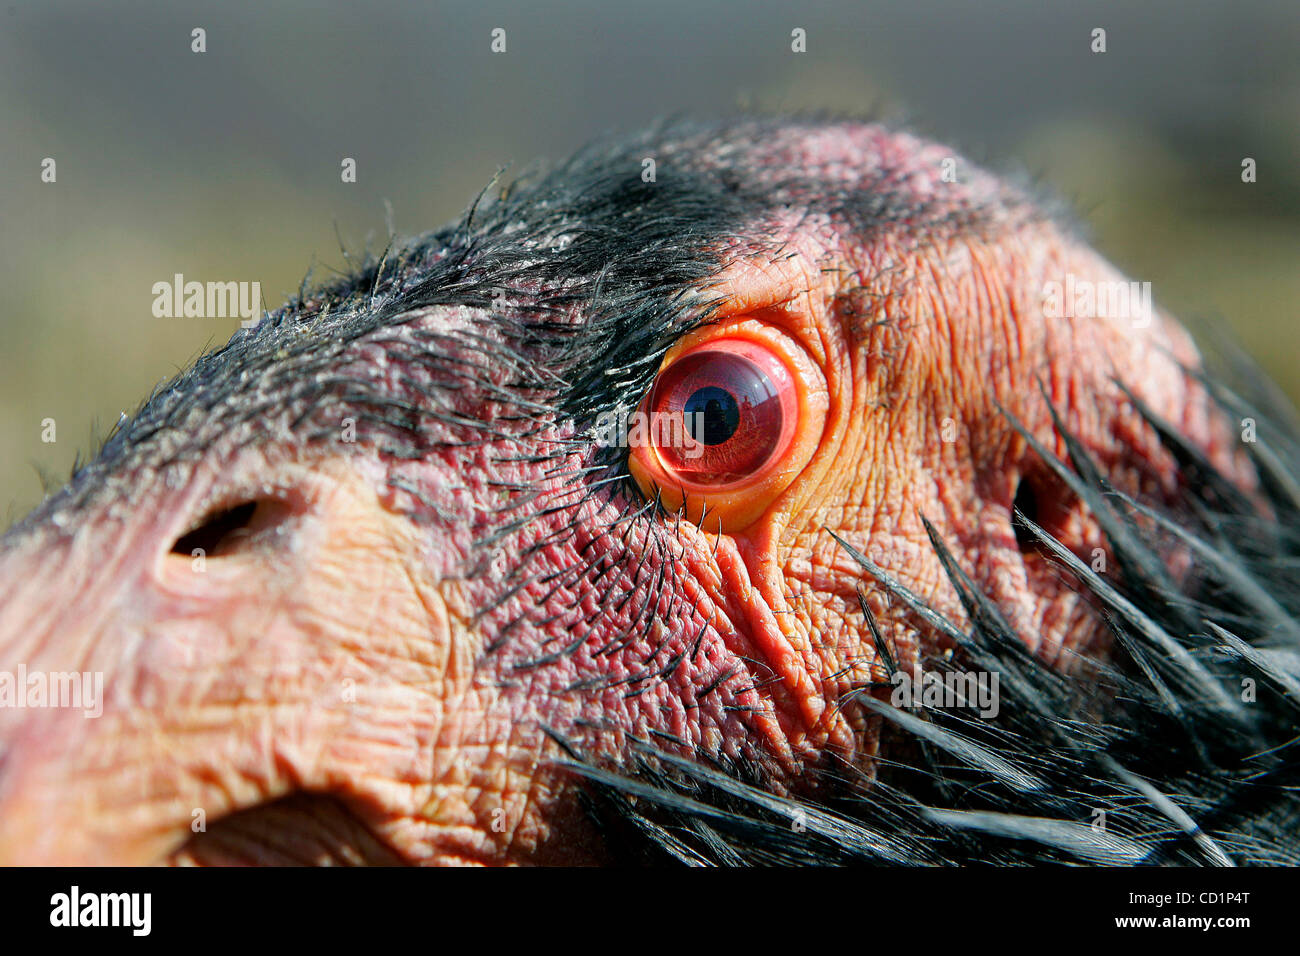 October 20th, 2008, San Diego, California, USA. Inside its new enclosure, a male California Condor named SIMERRYE - Stock Image